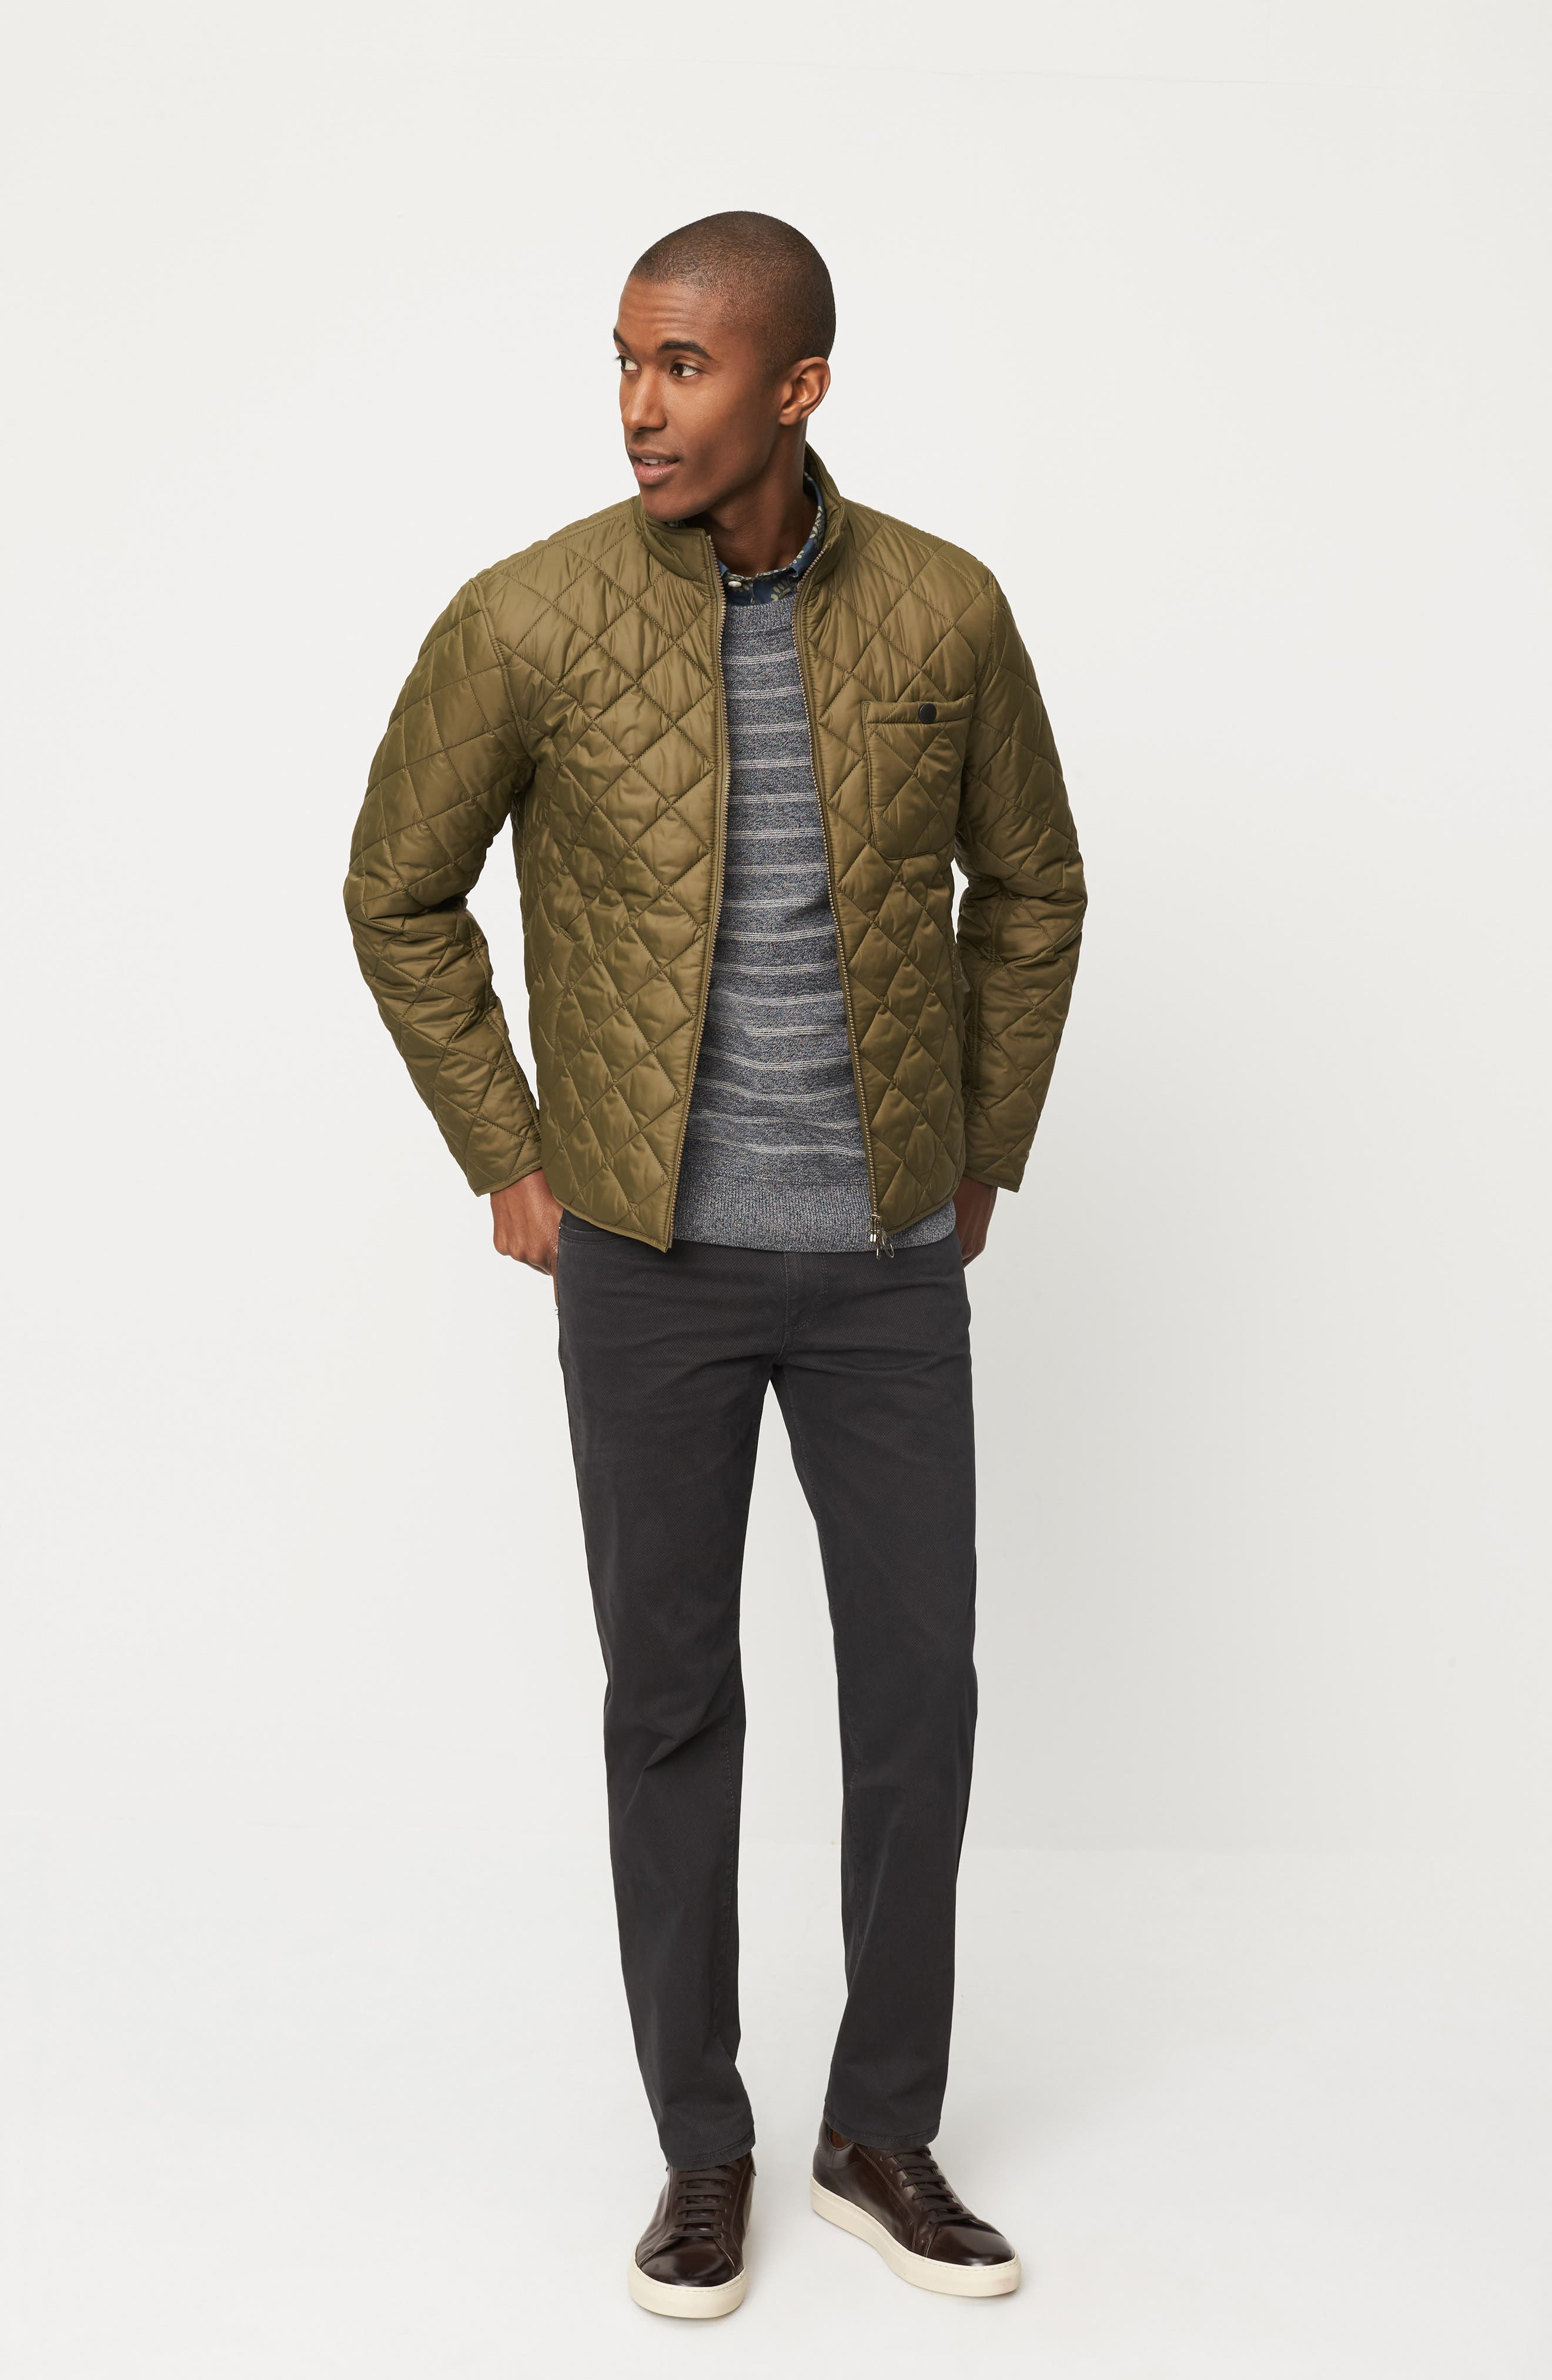 Barbour Jacket, Billy Reid Sweatshirt & Brax Trousers Outfit with Accessories